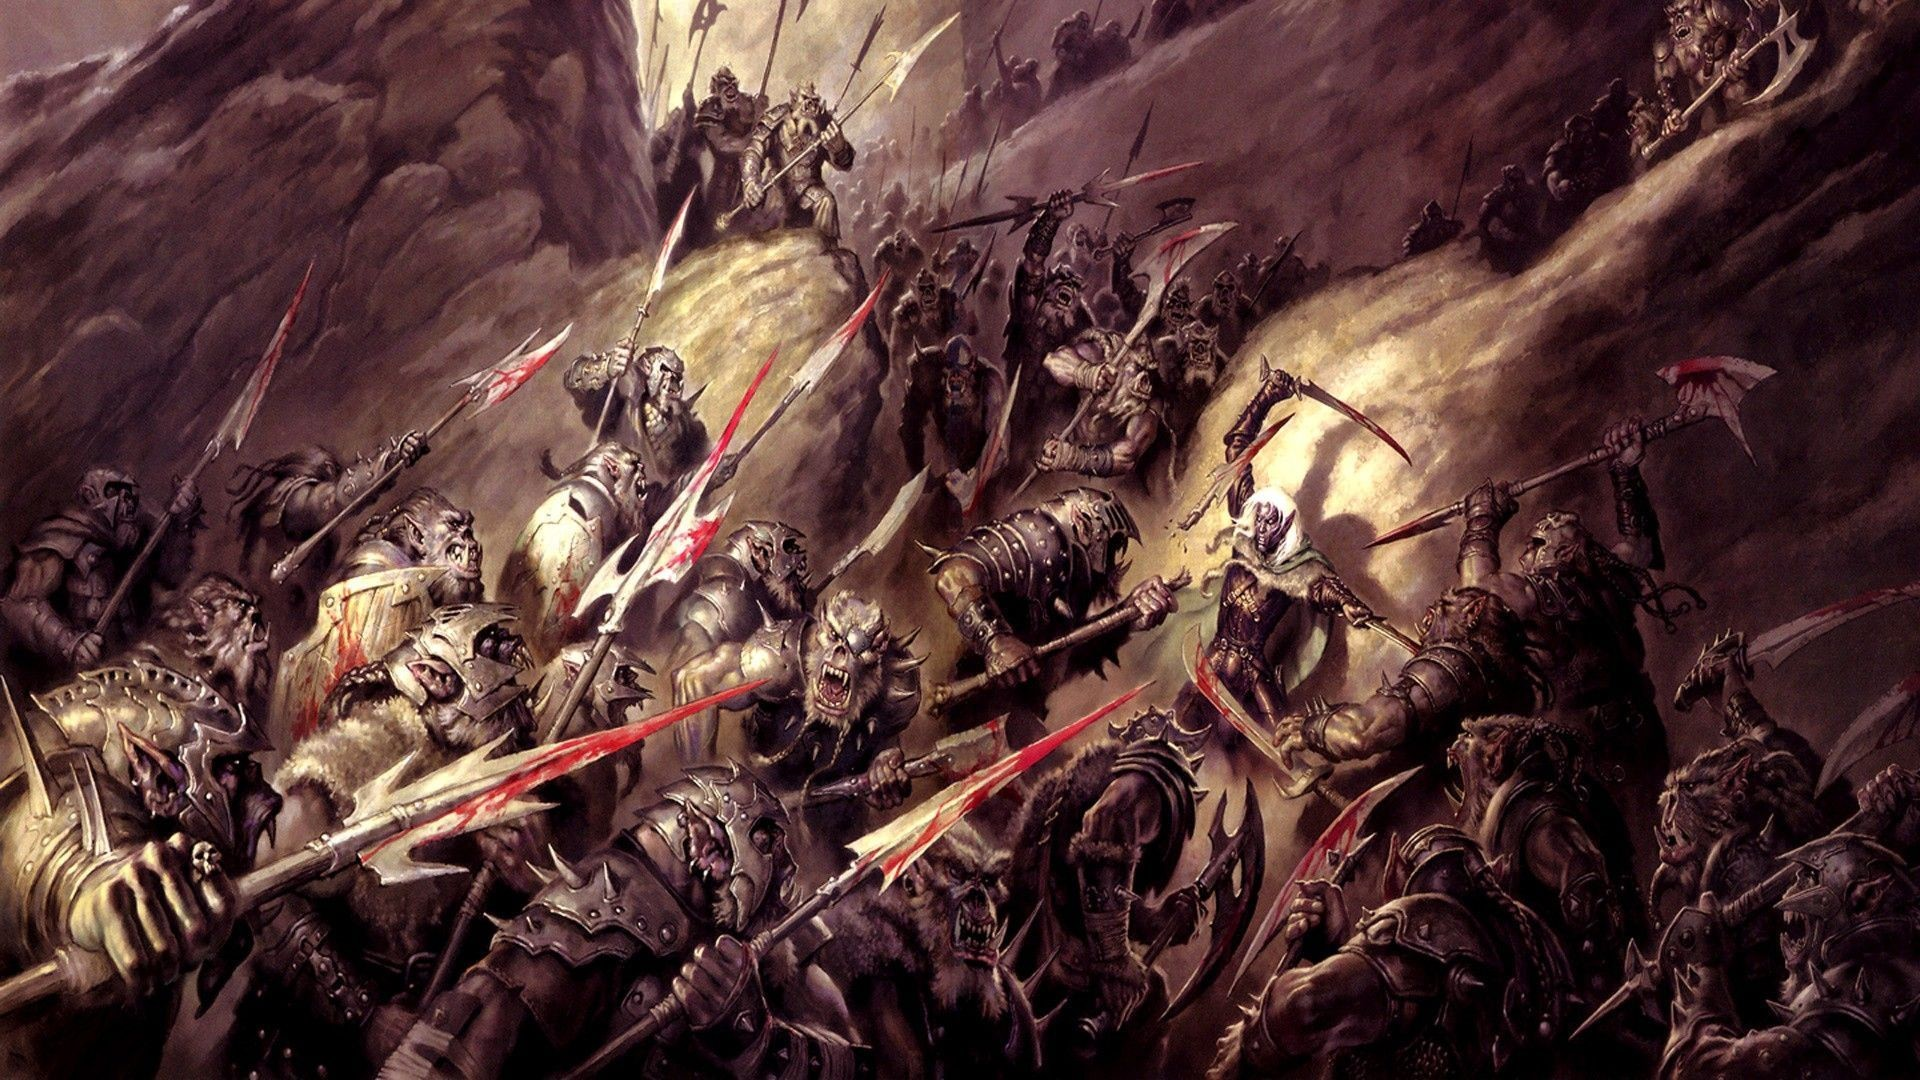 1920x1080 fantasy art, armor, dnd, orcs, axes, Dungeons and Dragons, spears